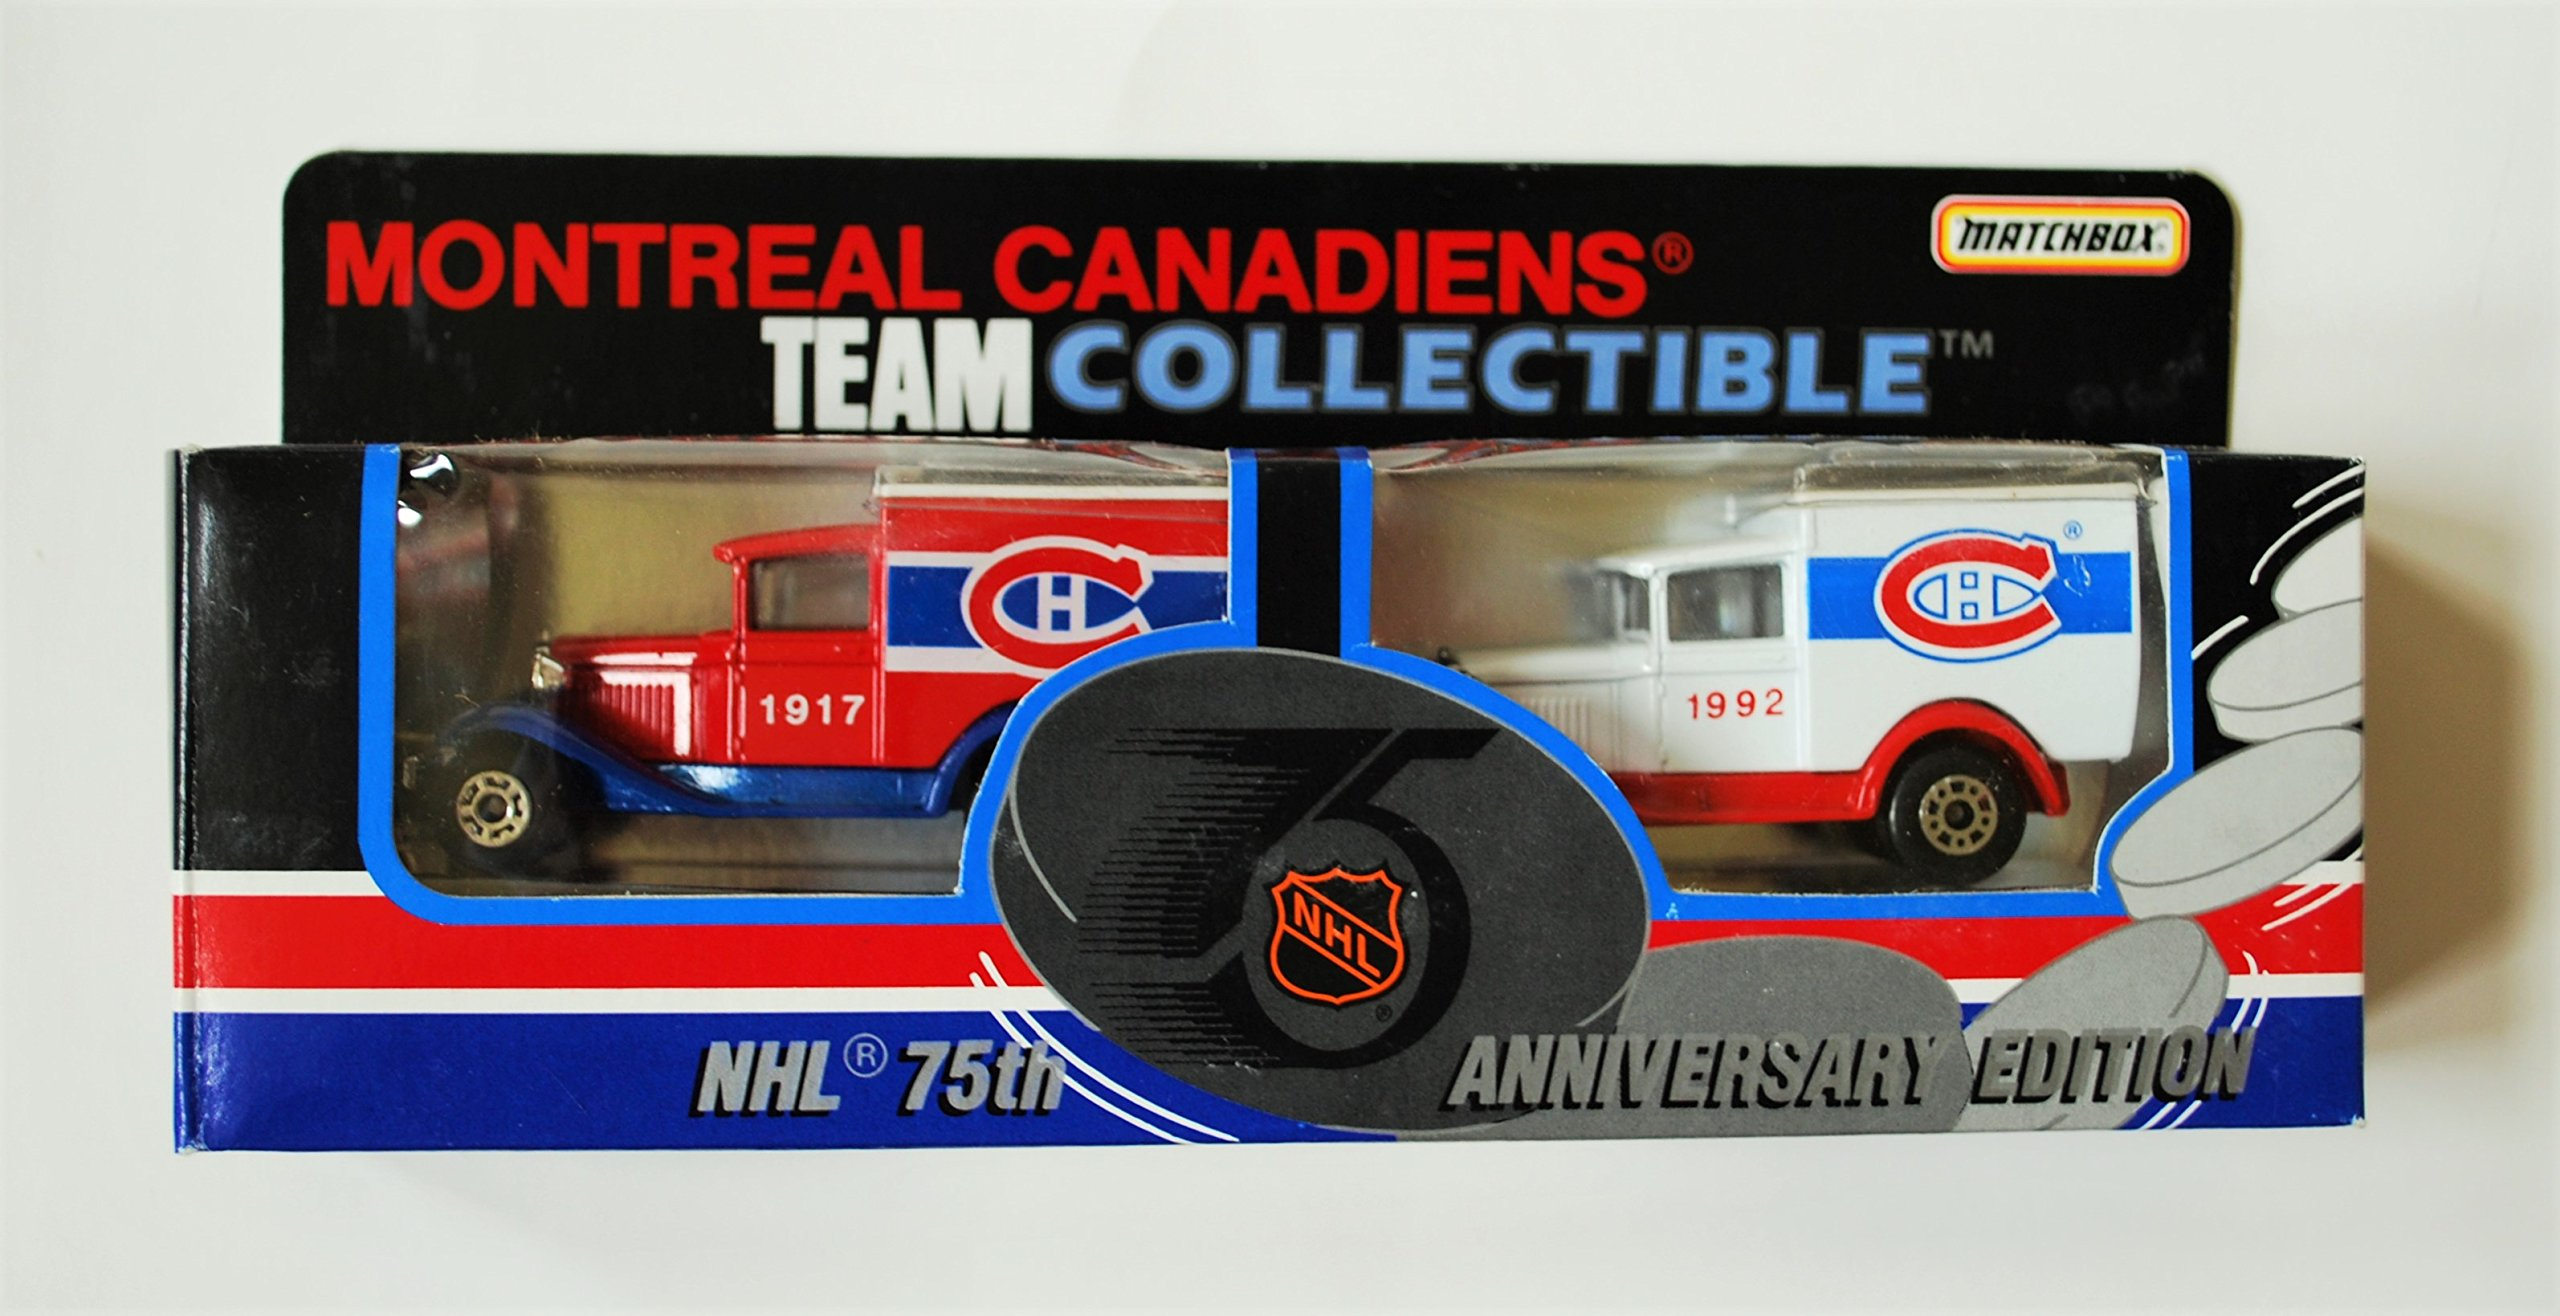 1992 Matchbox NHL Team Collectible 1:64 Scale Die Cast 2 Piece Truck Set MONTREAL CANADIENS